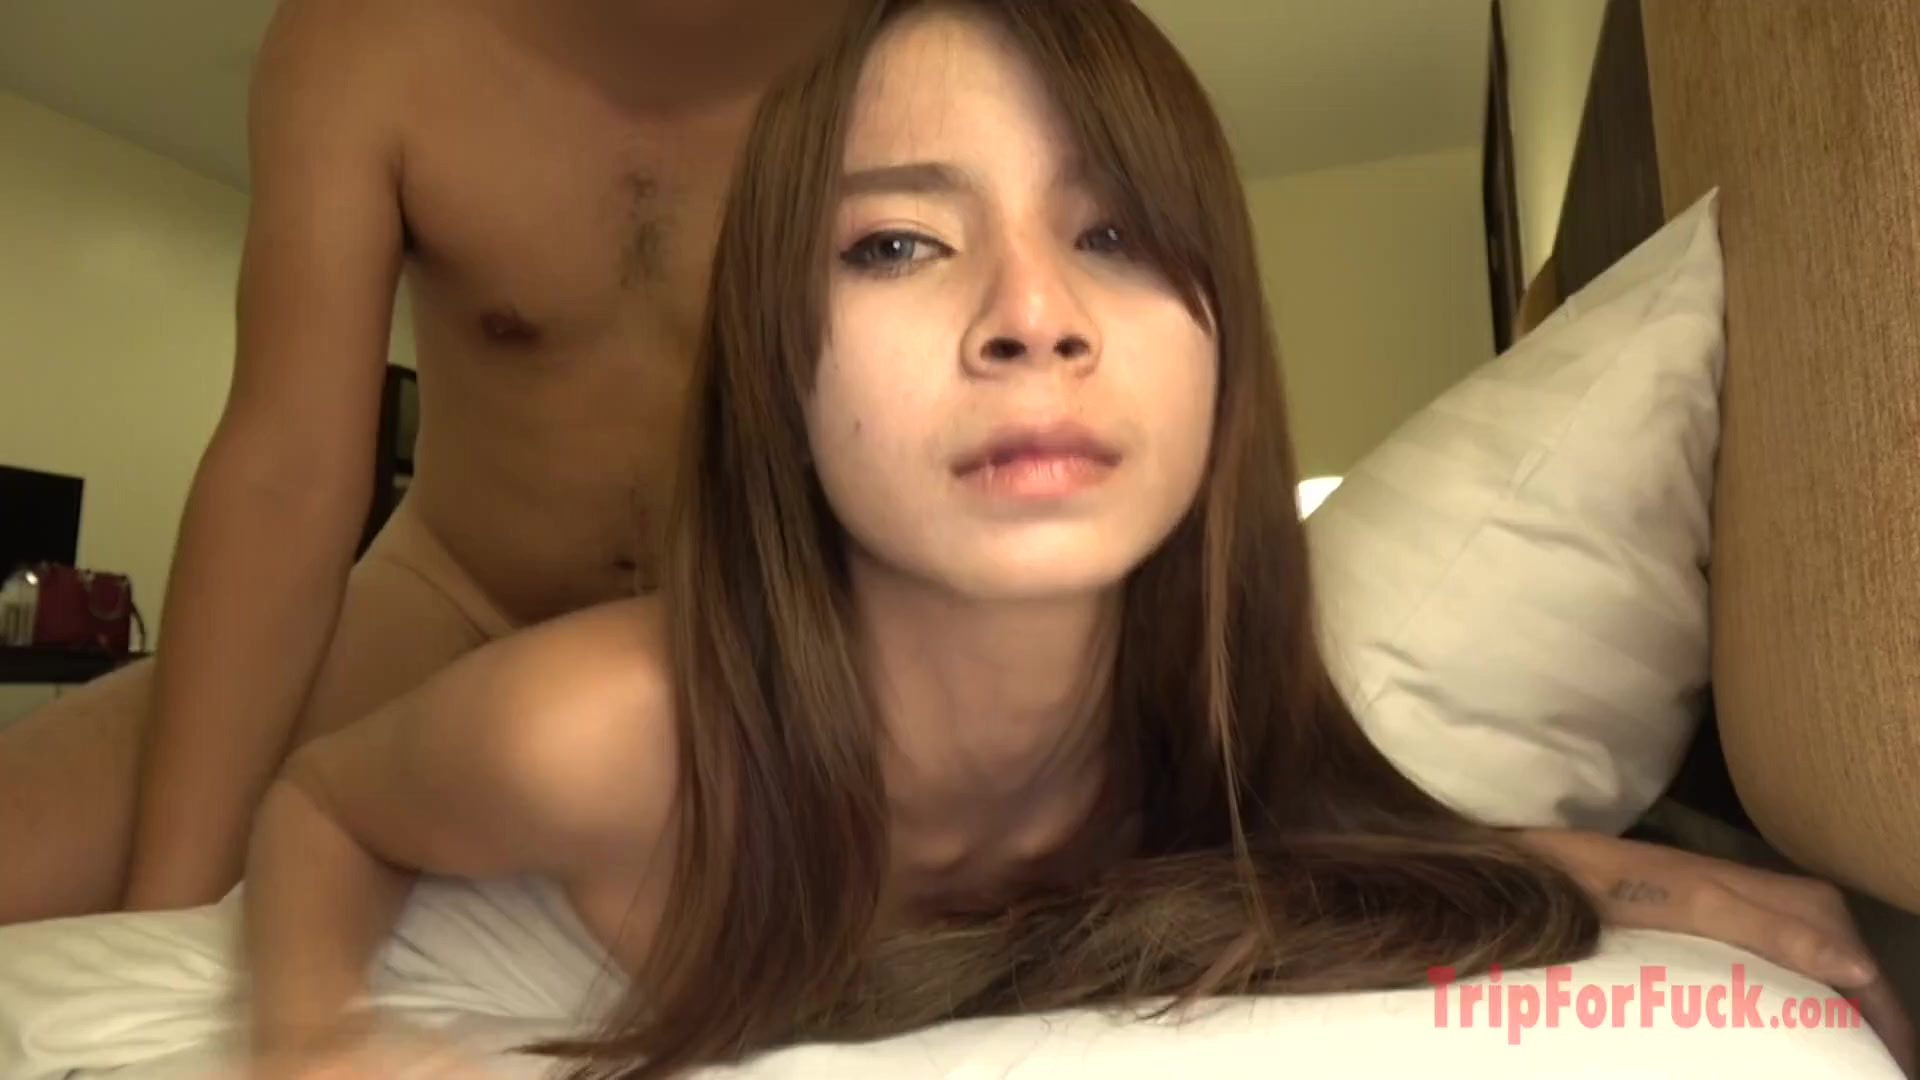 Skinny Thai slut enjoys cock riding in hotel room